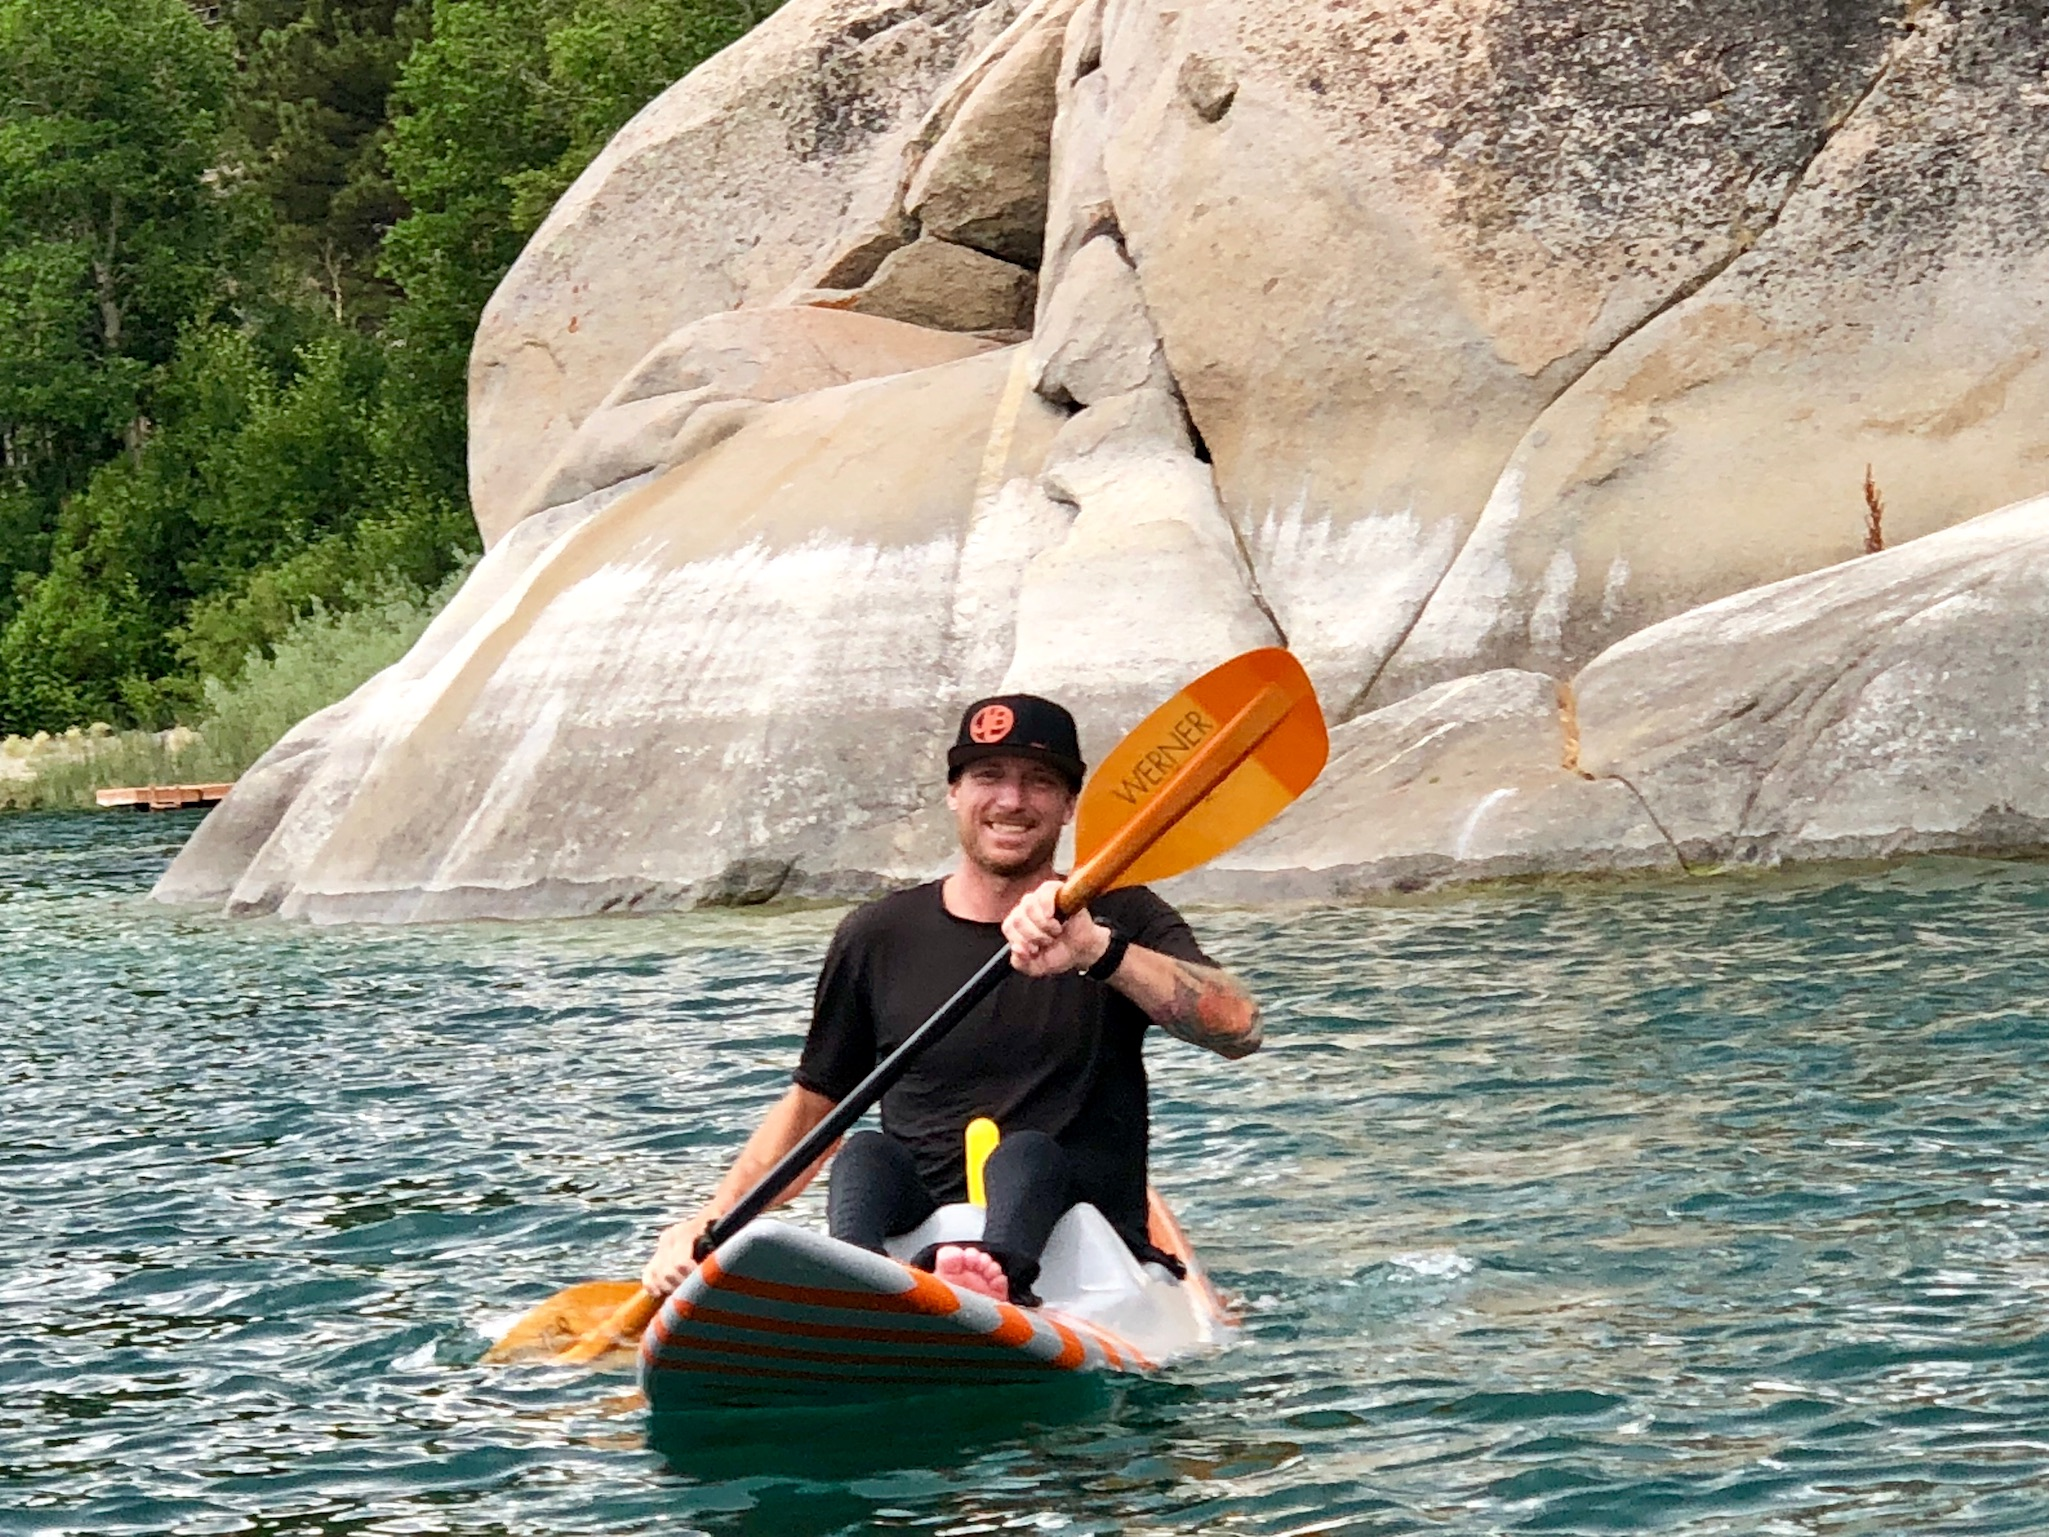 Surfboard doubles as a kayak. Don't pay attention to how I'm holding the camera with the yellow bobber handle